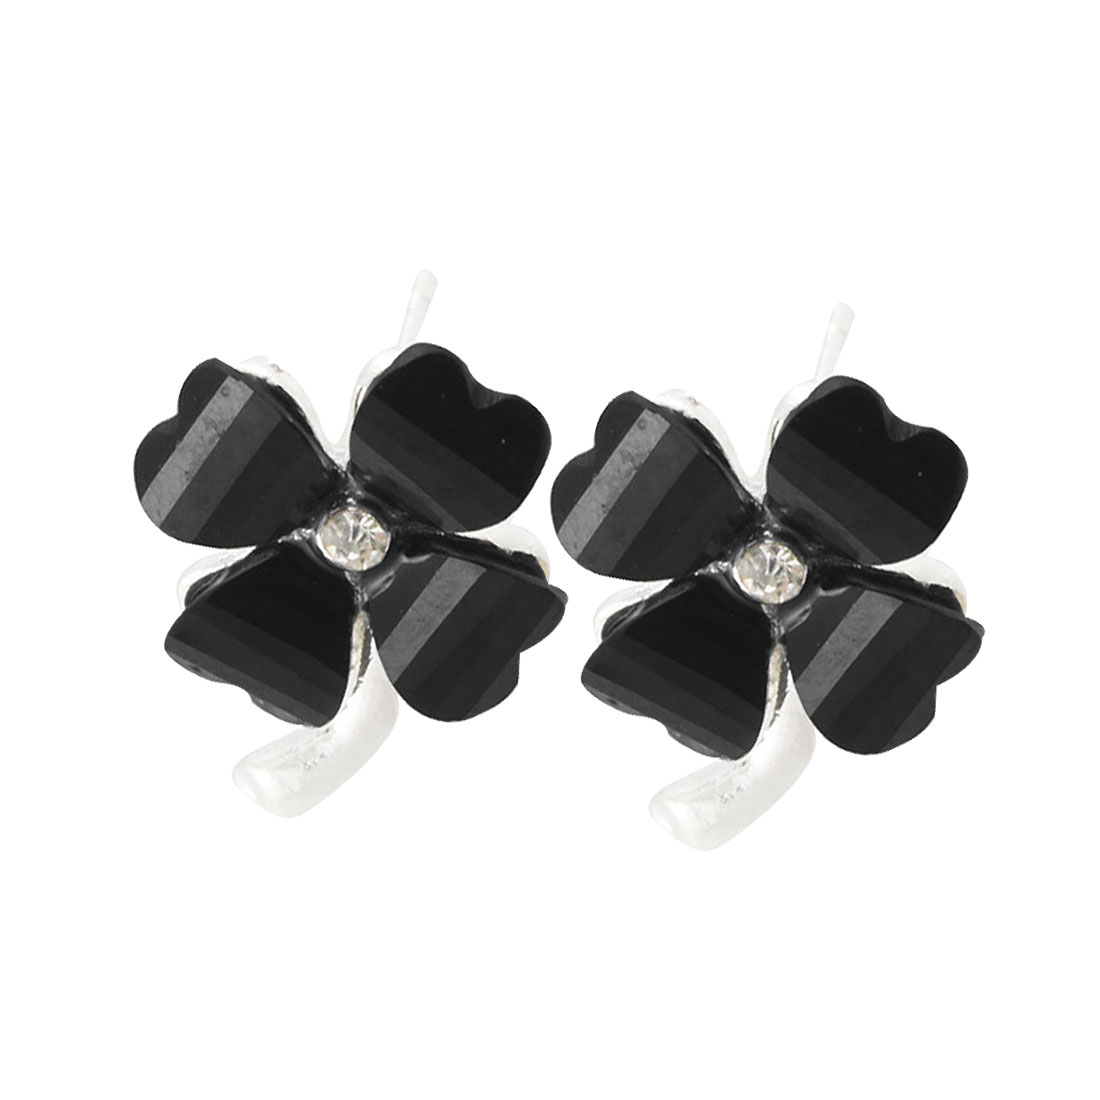 Ladies Rhinestone Accent Black Plastic Clove Type Stud Earrings Pair